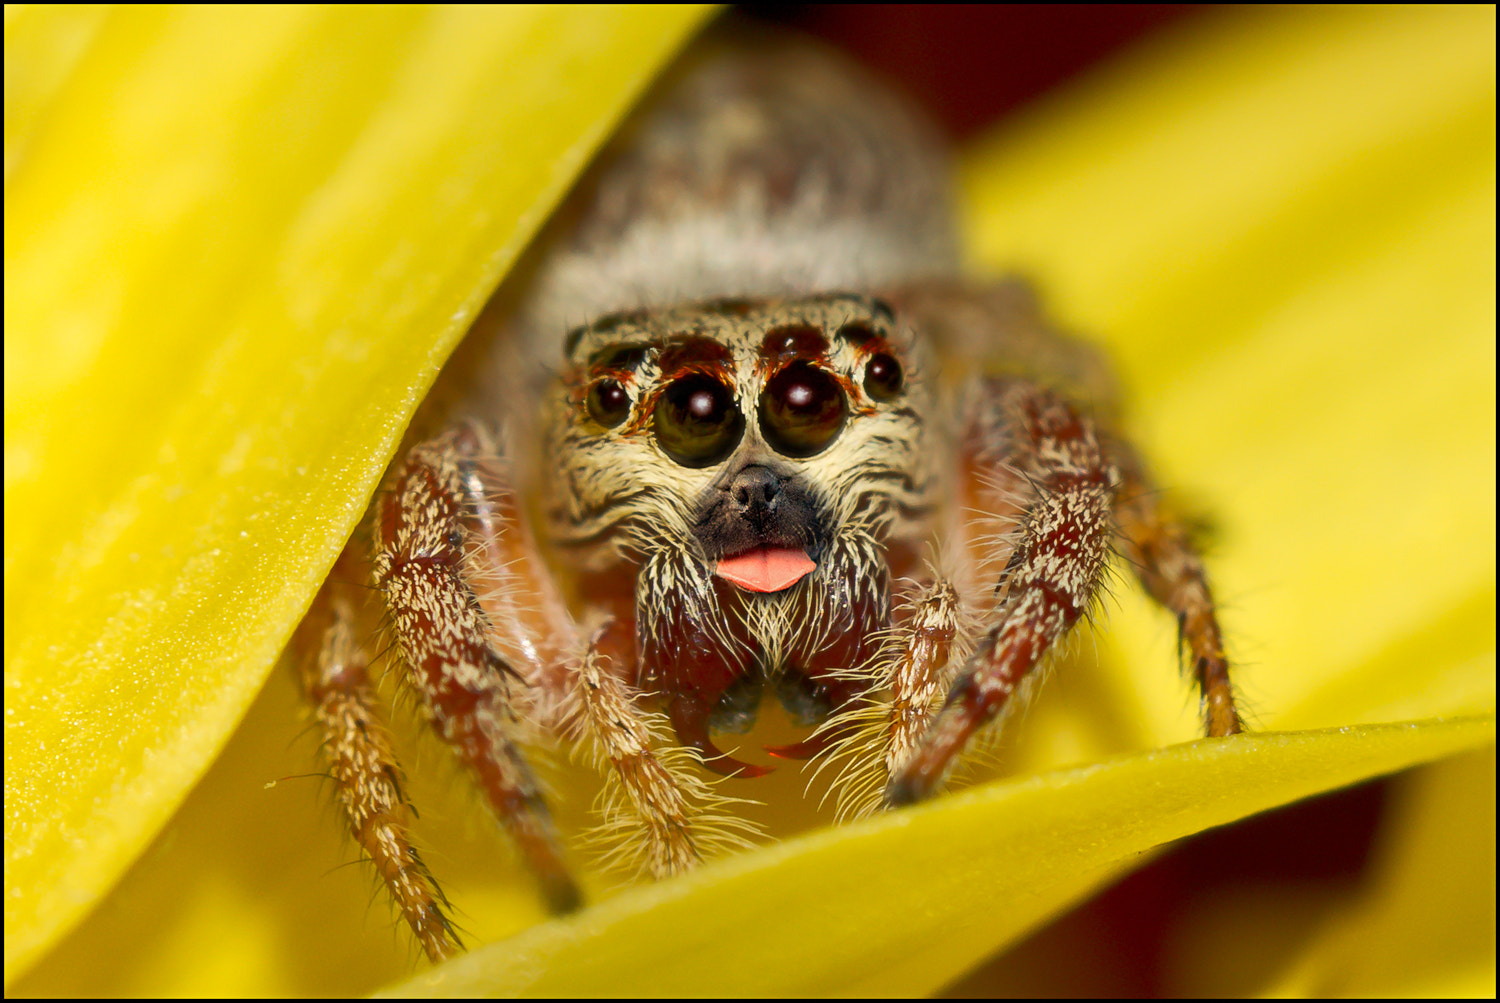 Friendly Spider by Steve Passlow - Photo 12999793 - 500px